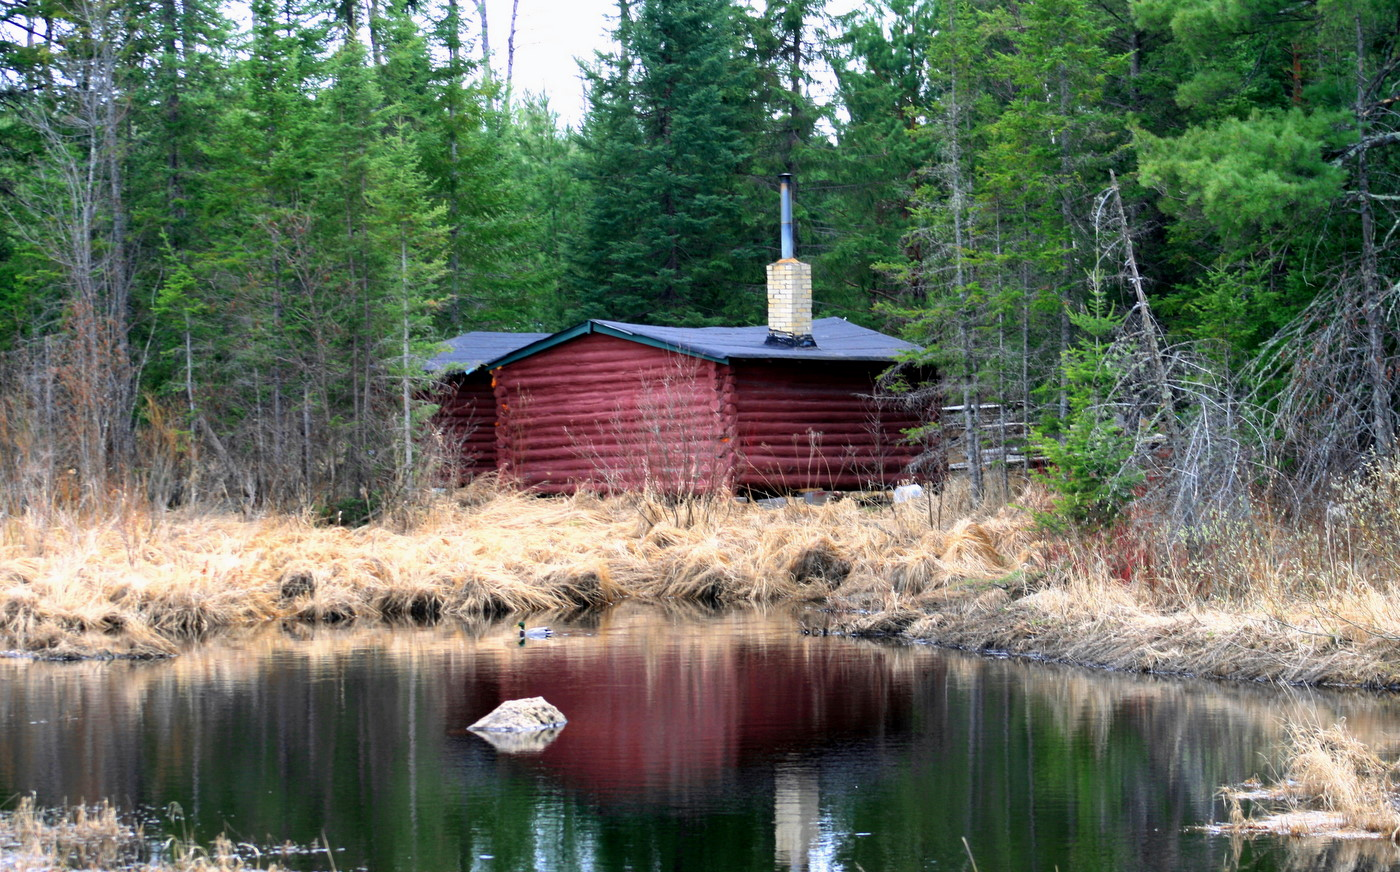 reflection of old hunting cabin in pond author p pluskwik paul